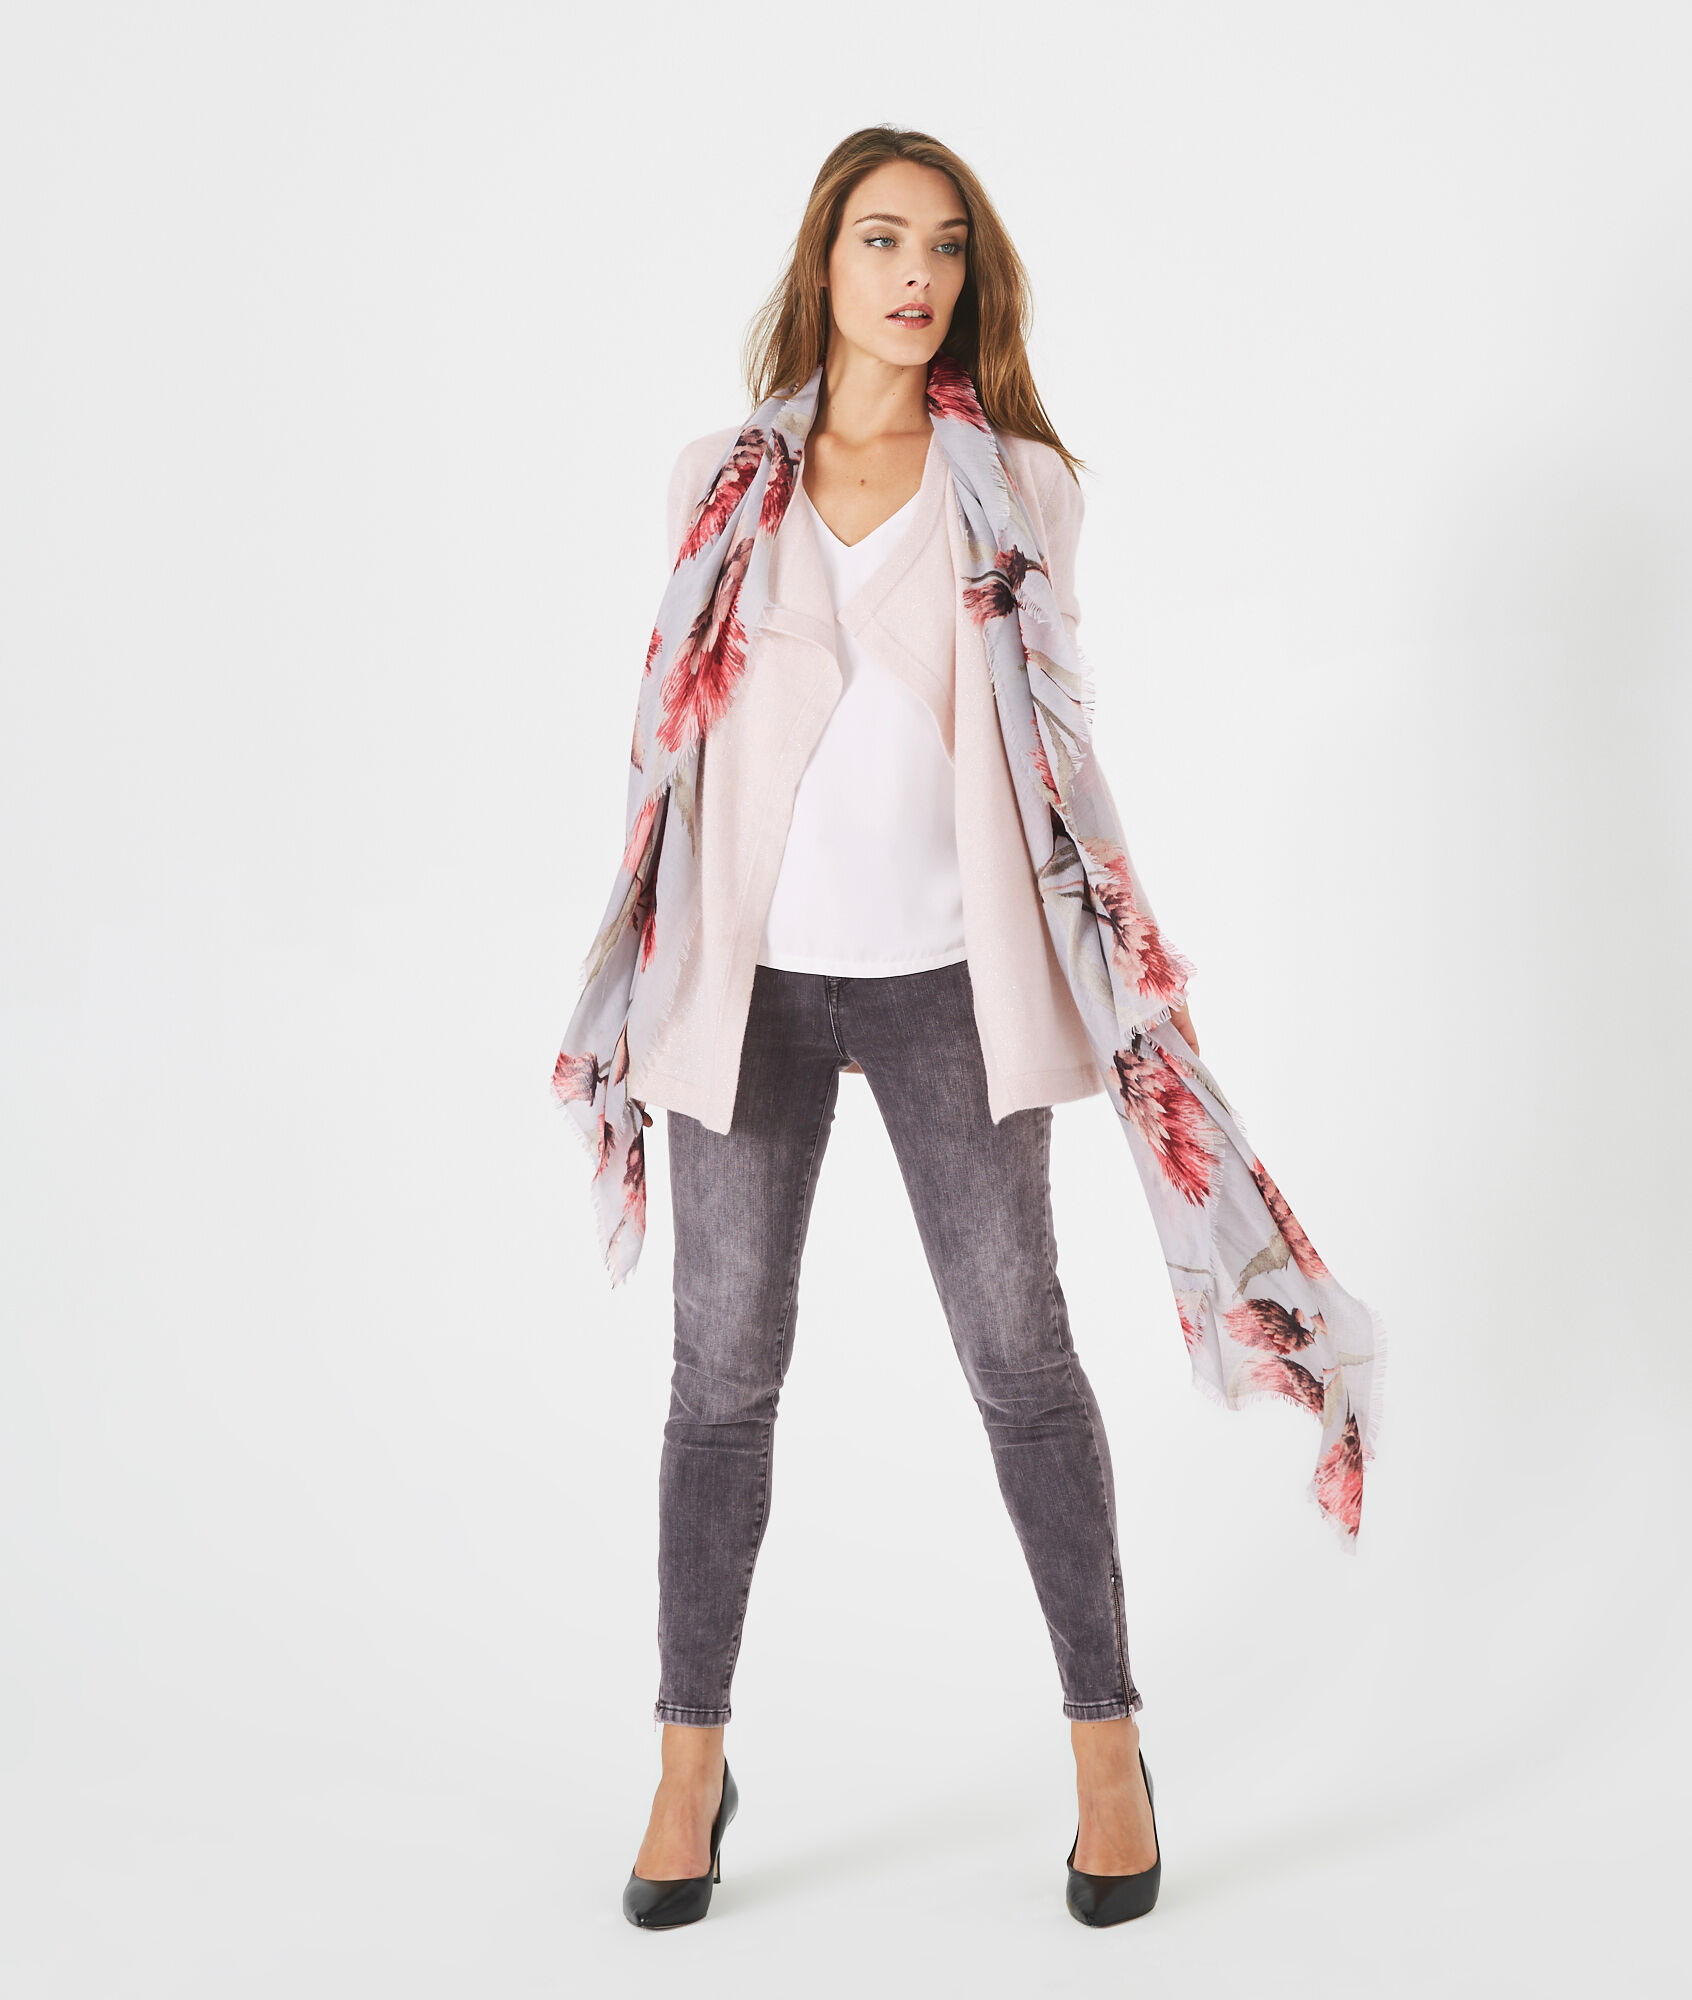 Pimprenelle powder pink, shiny cashmere, waterfall cardigan - 123